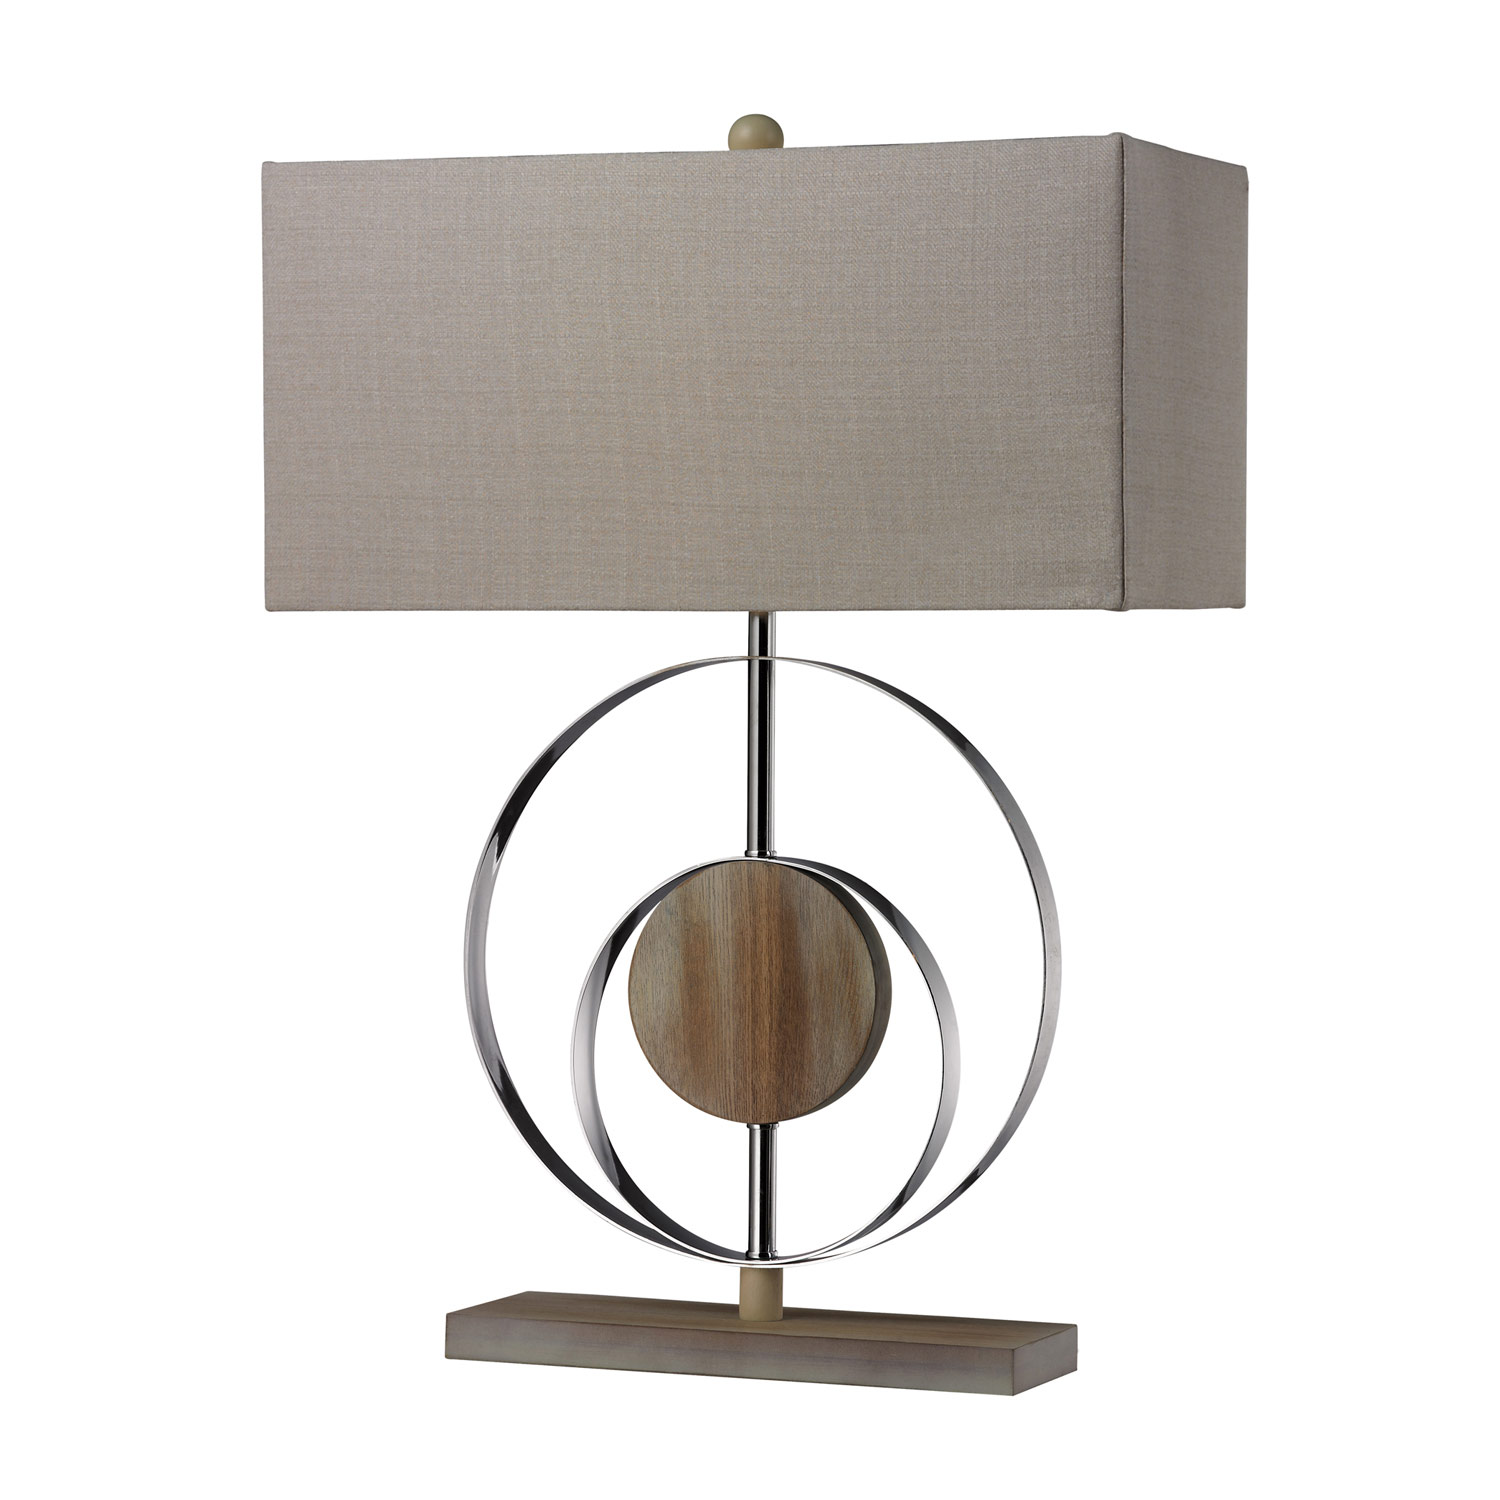 Elk Lighting D2297 Shiprock Table Lamp - Bleached Wood with Chrom